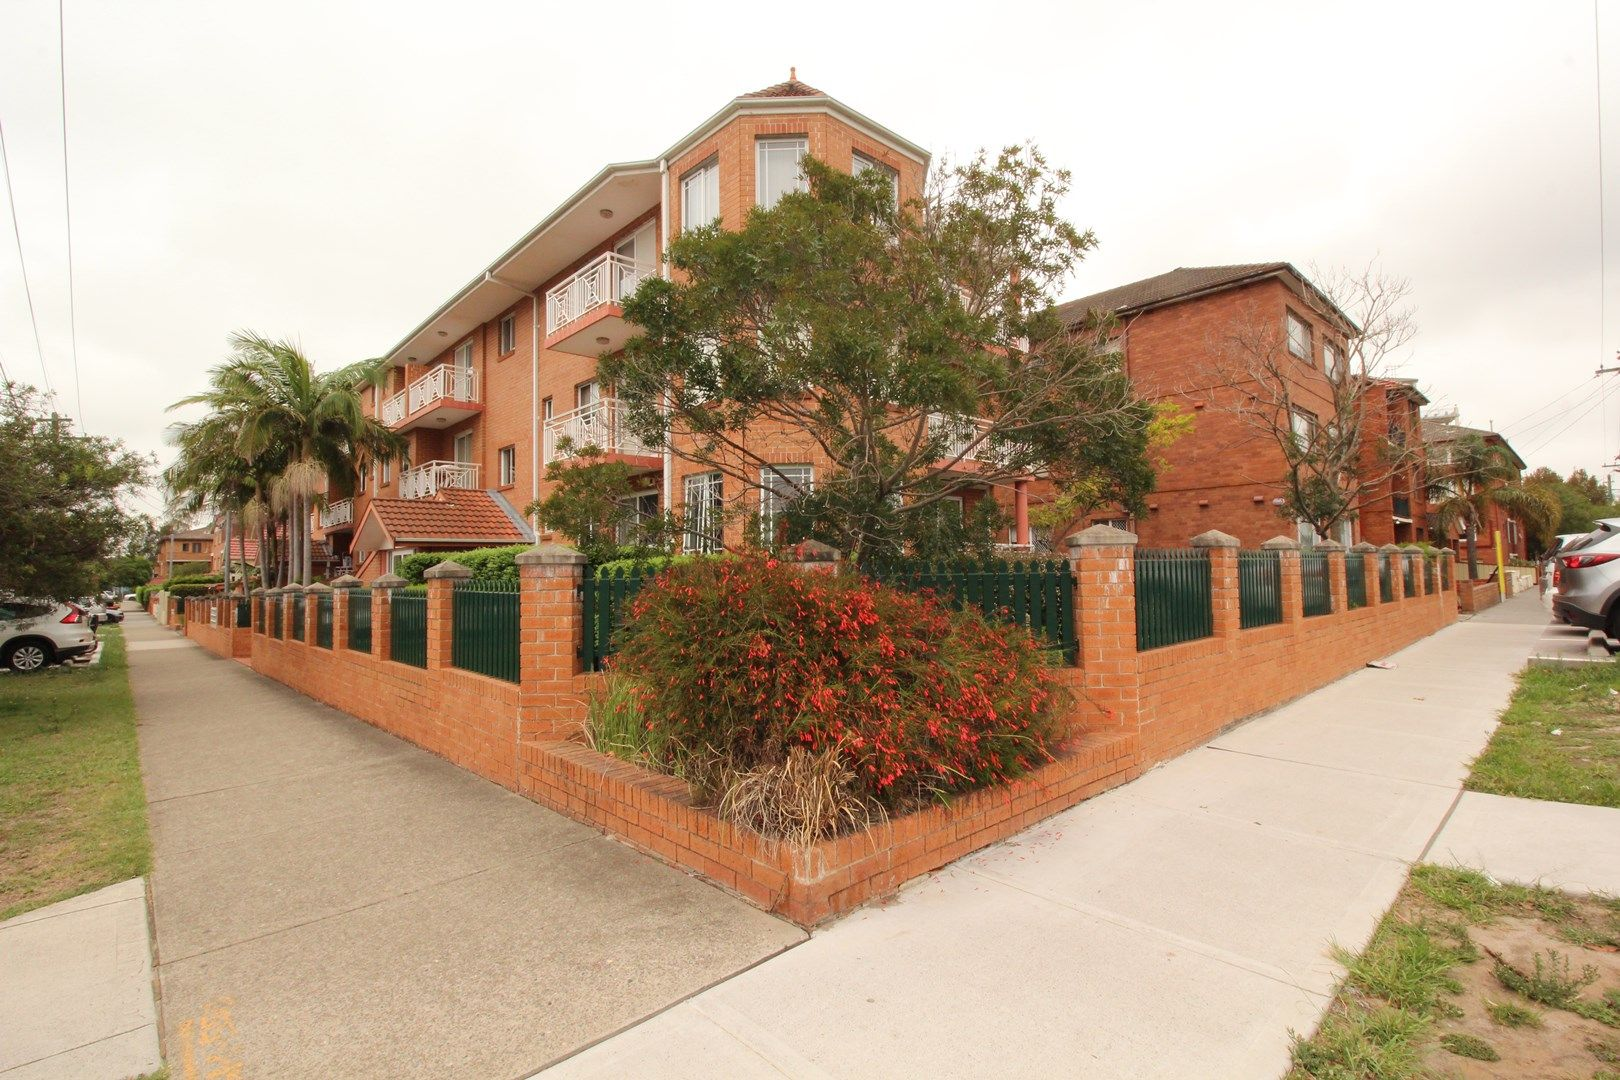 8/40-42 Forsyth Street, Kingsford NSW 2032, Image 0